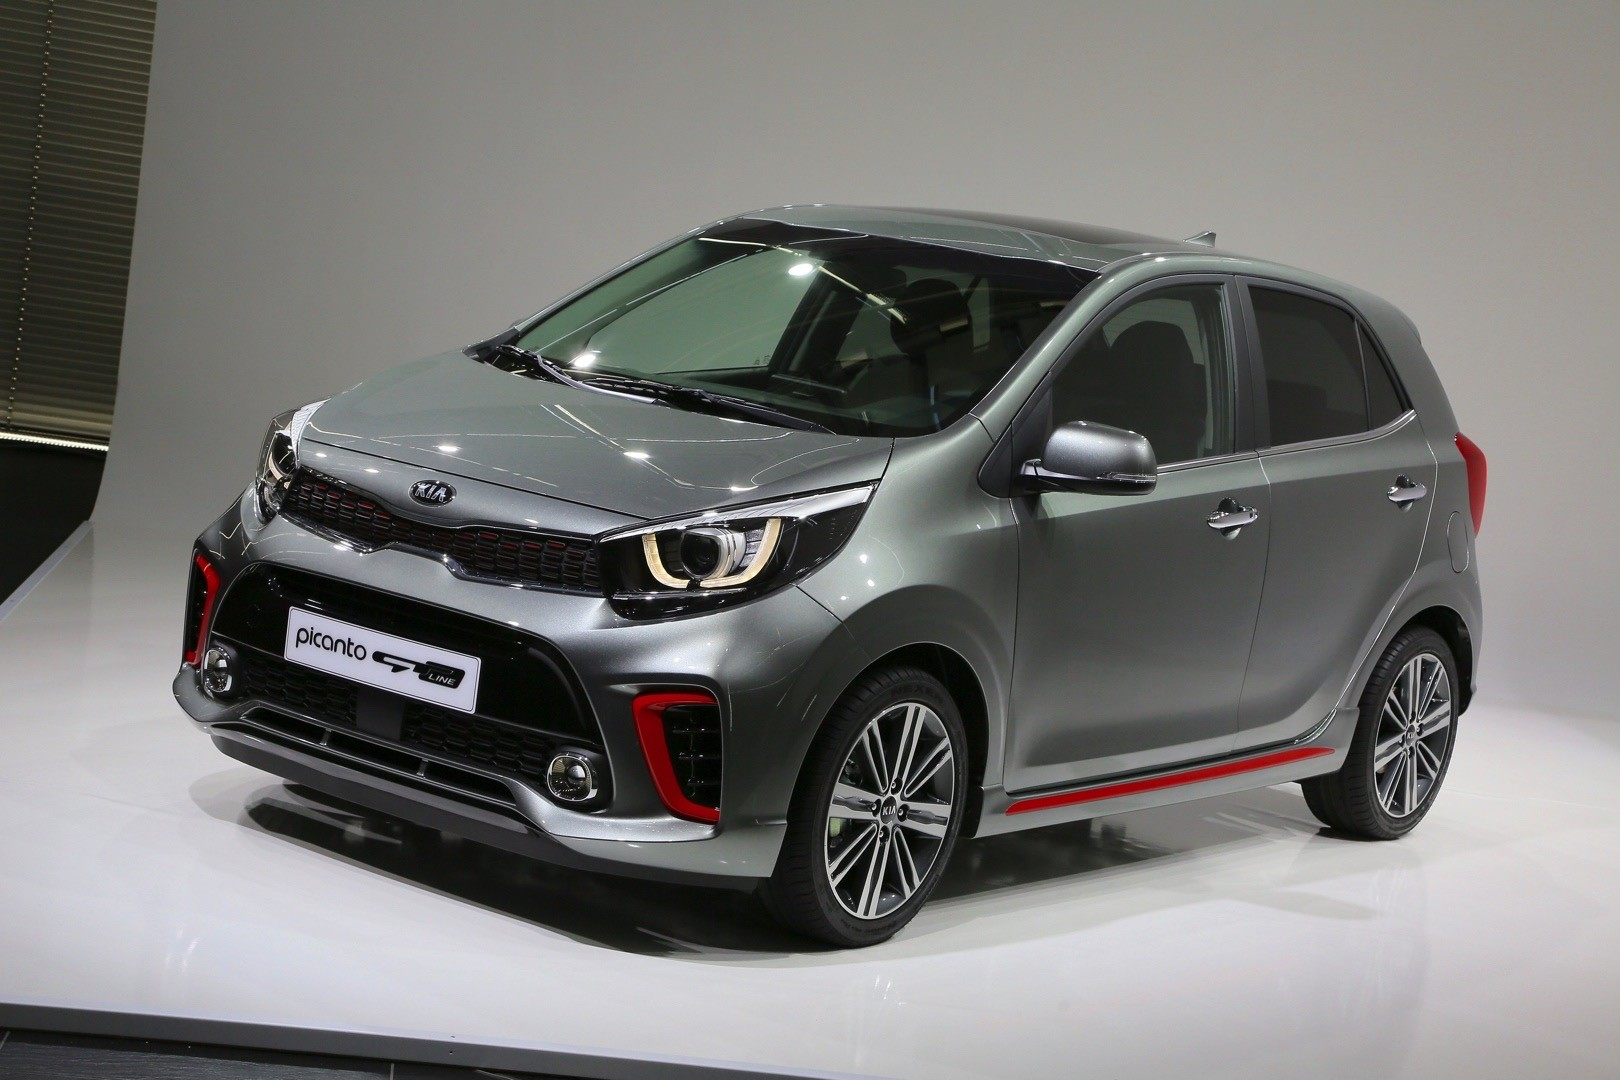 2017 kia picanto specifications revealed 1 0 t gdi engine rated at 100 ps autoevolution. Black Bedroom Furniture Sets. Home Design Ideas